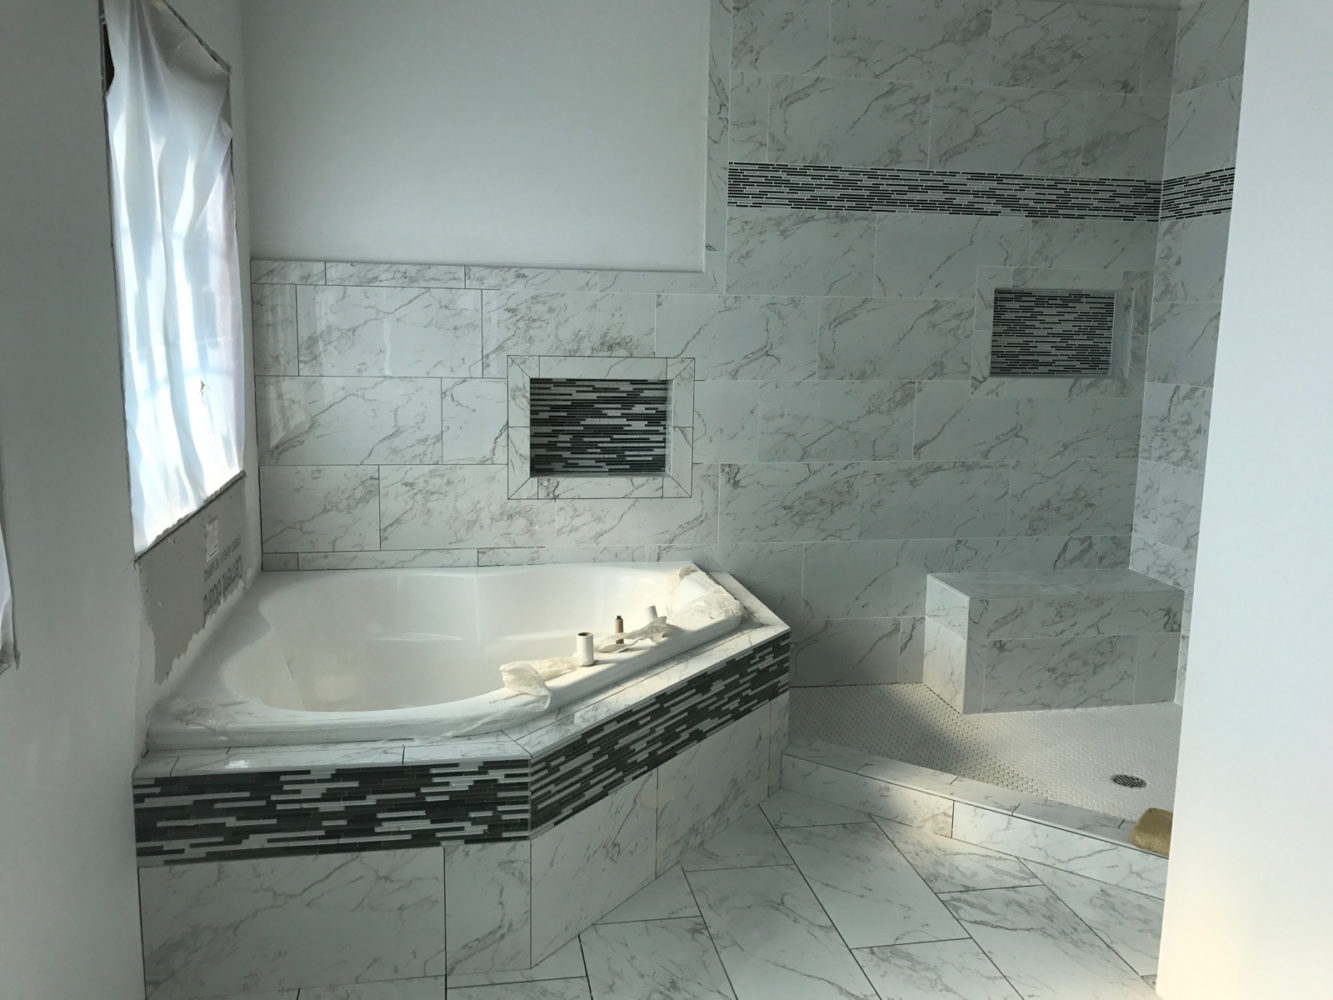 tile work in bathrooms bathroom tile work tile design ideas 20904